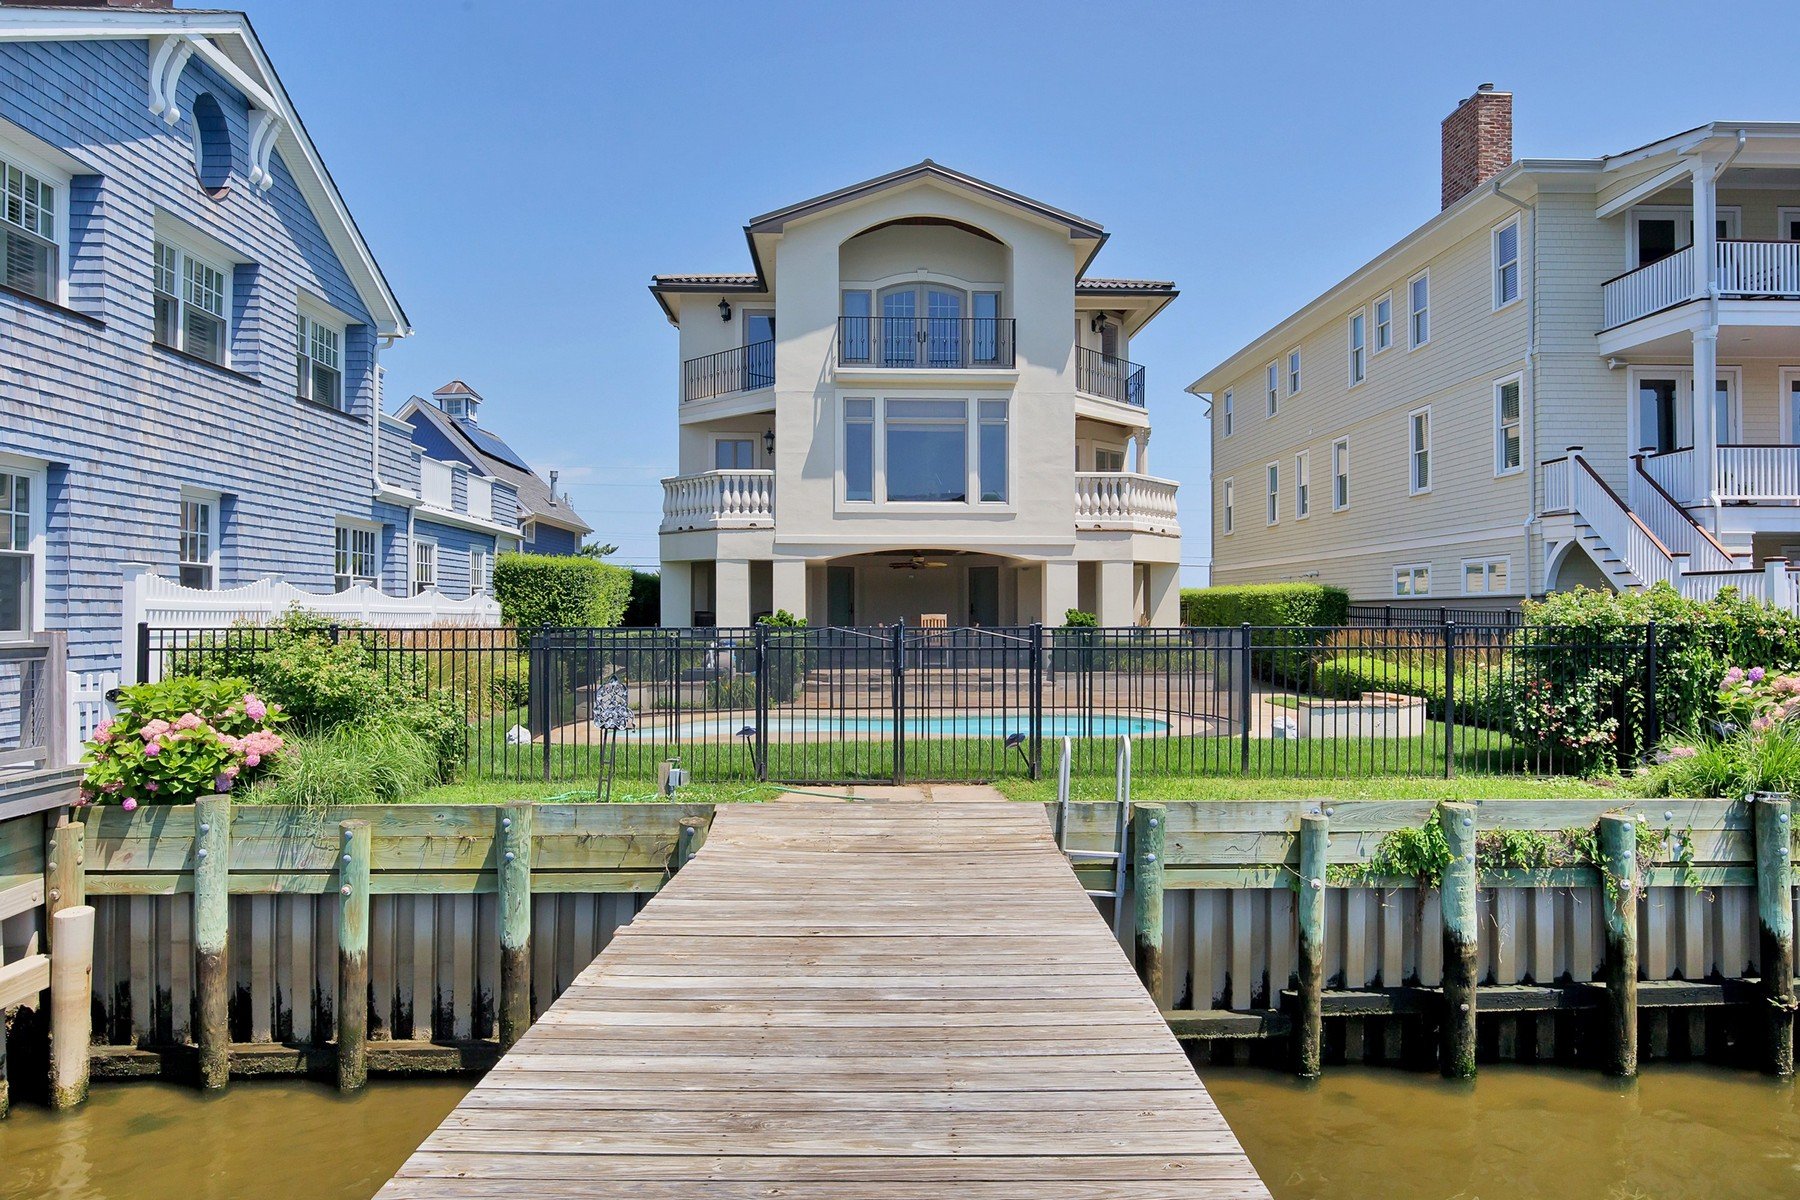 Single Family Home for Sale at Beautiful Waterfront Home 314 Ocean Avenue Sea Bright, New Jersey 07760 United States